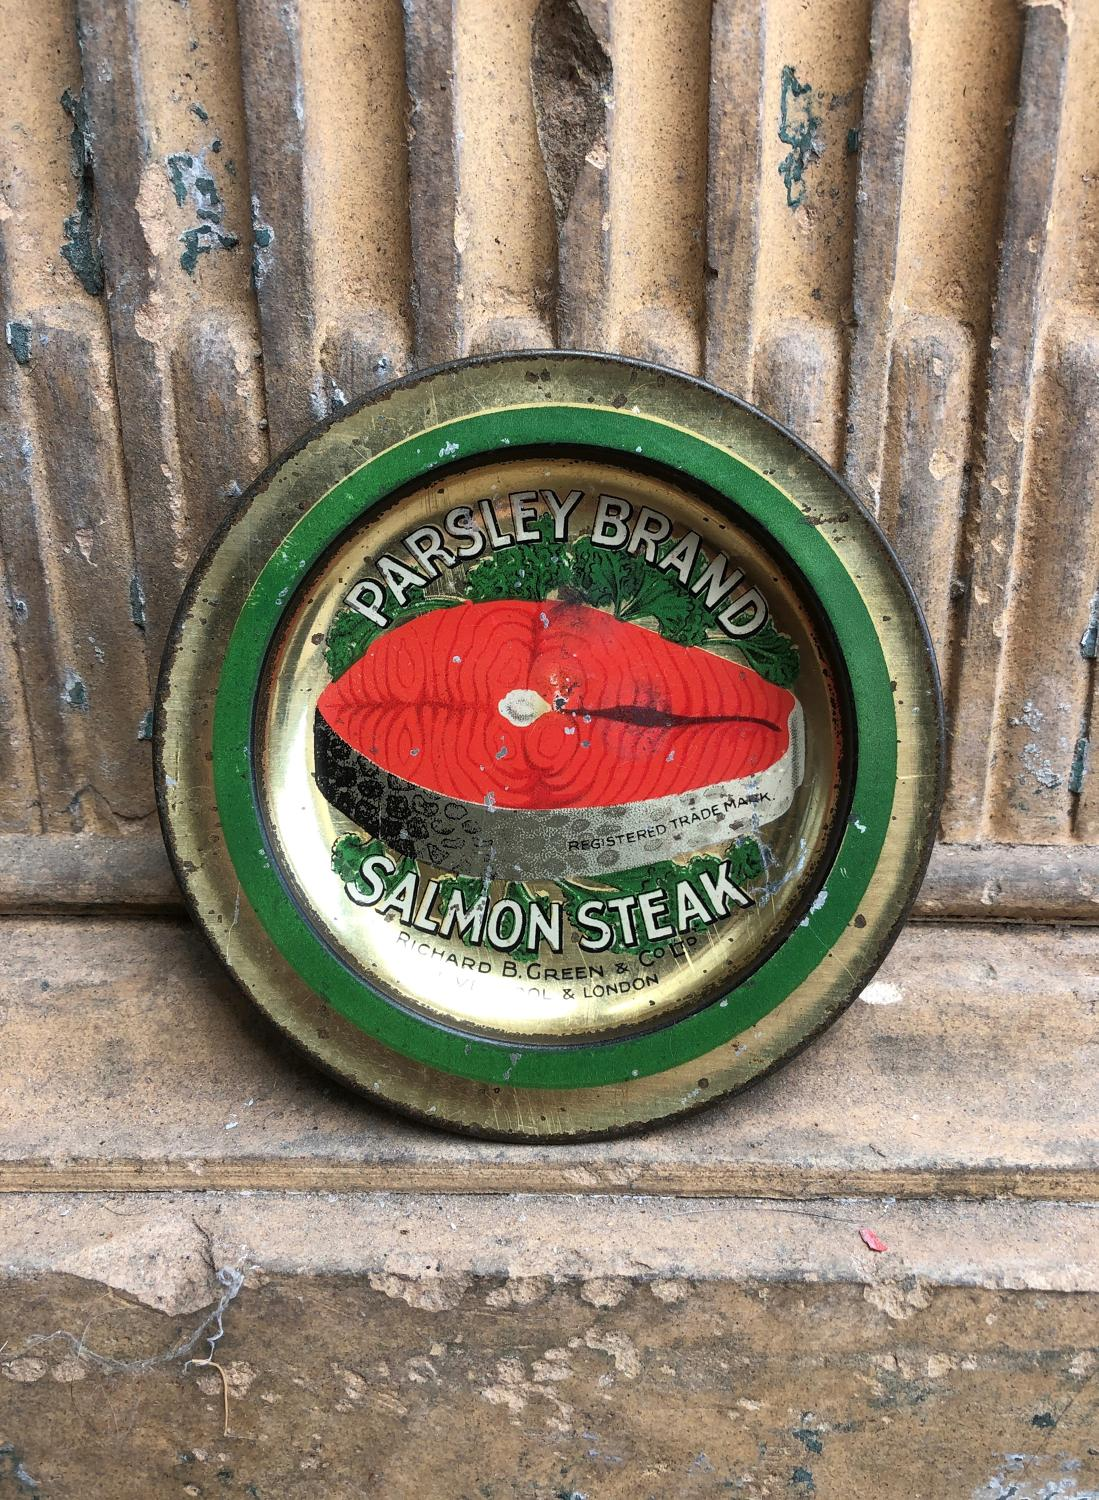 Early 20thC Shops Advertising Change Tray - Parsley Brand Salmon